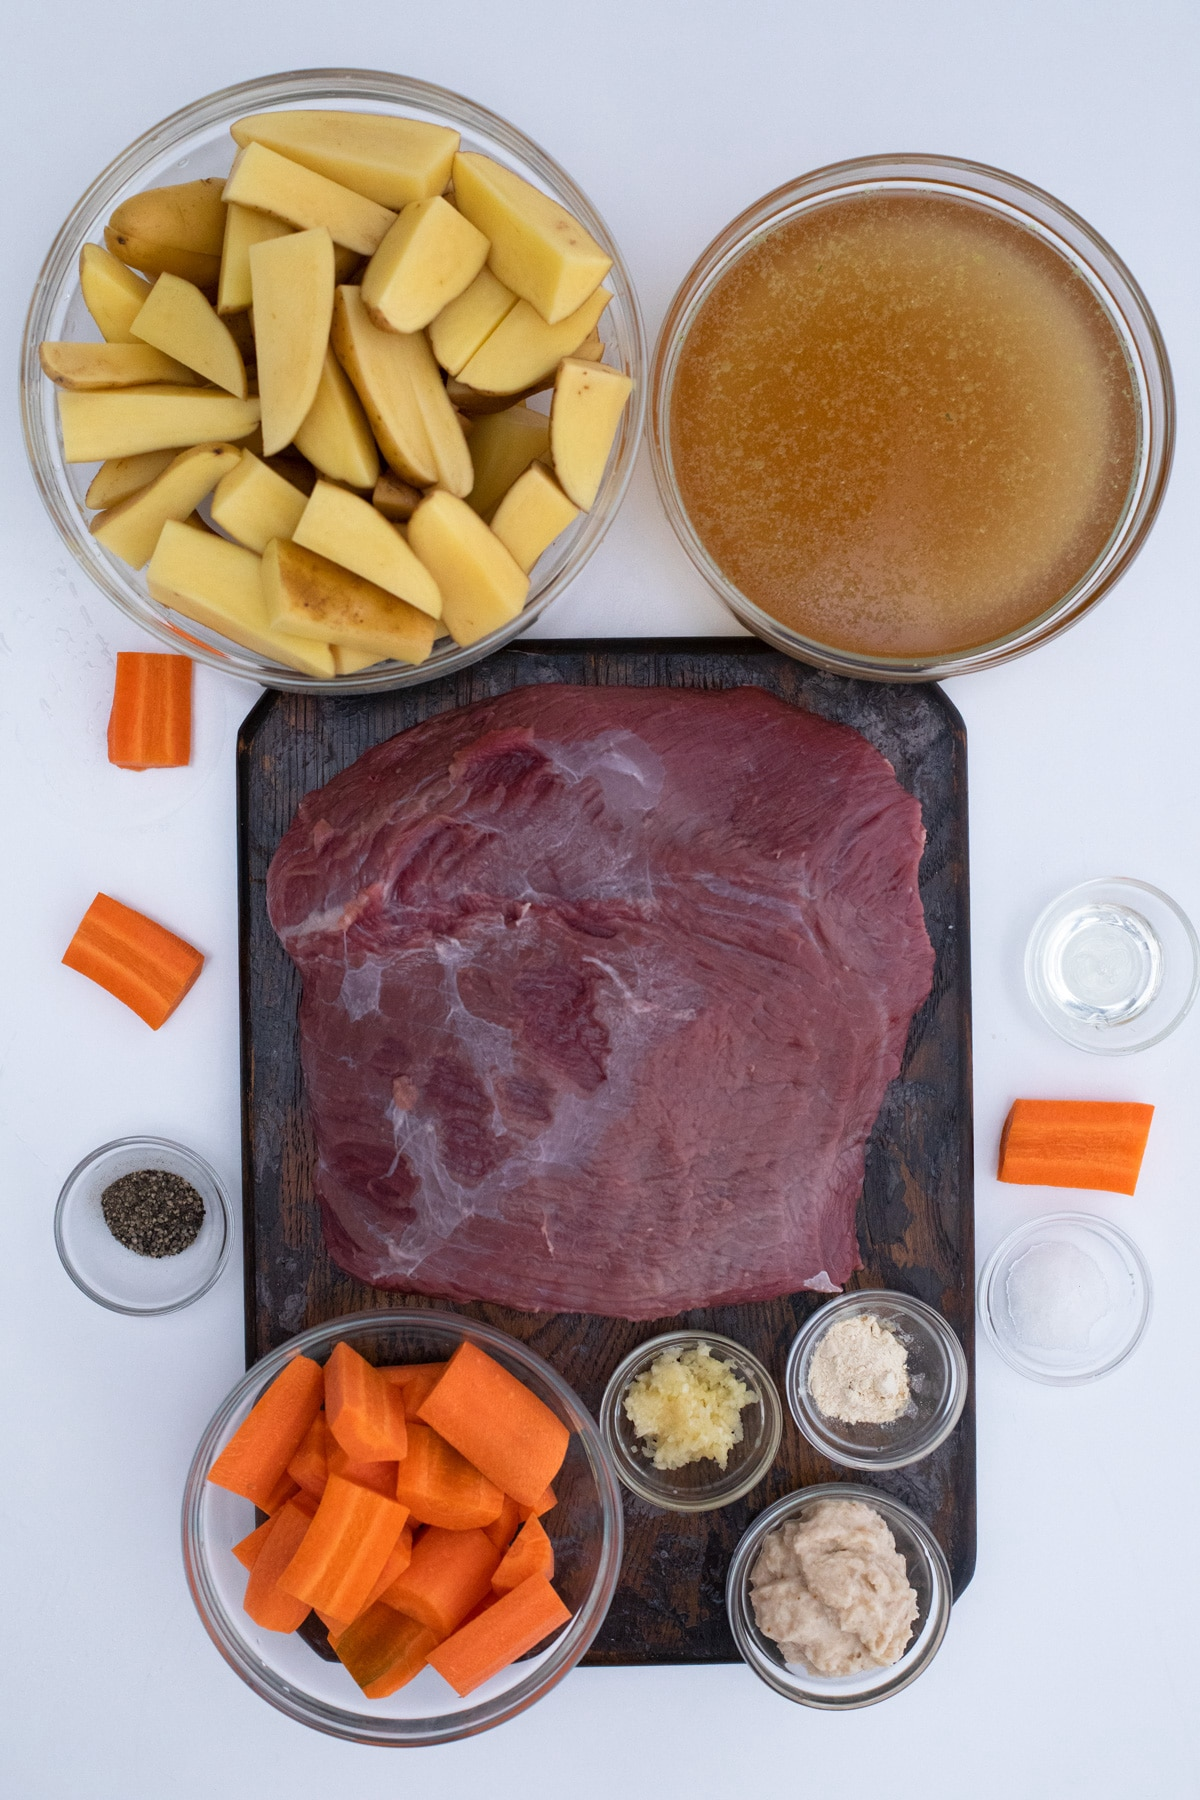 Ingredients for beef roast on white table in bowls